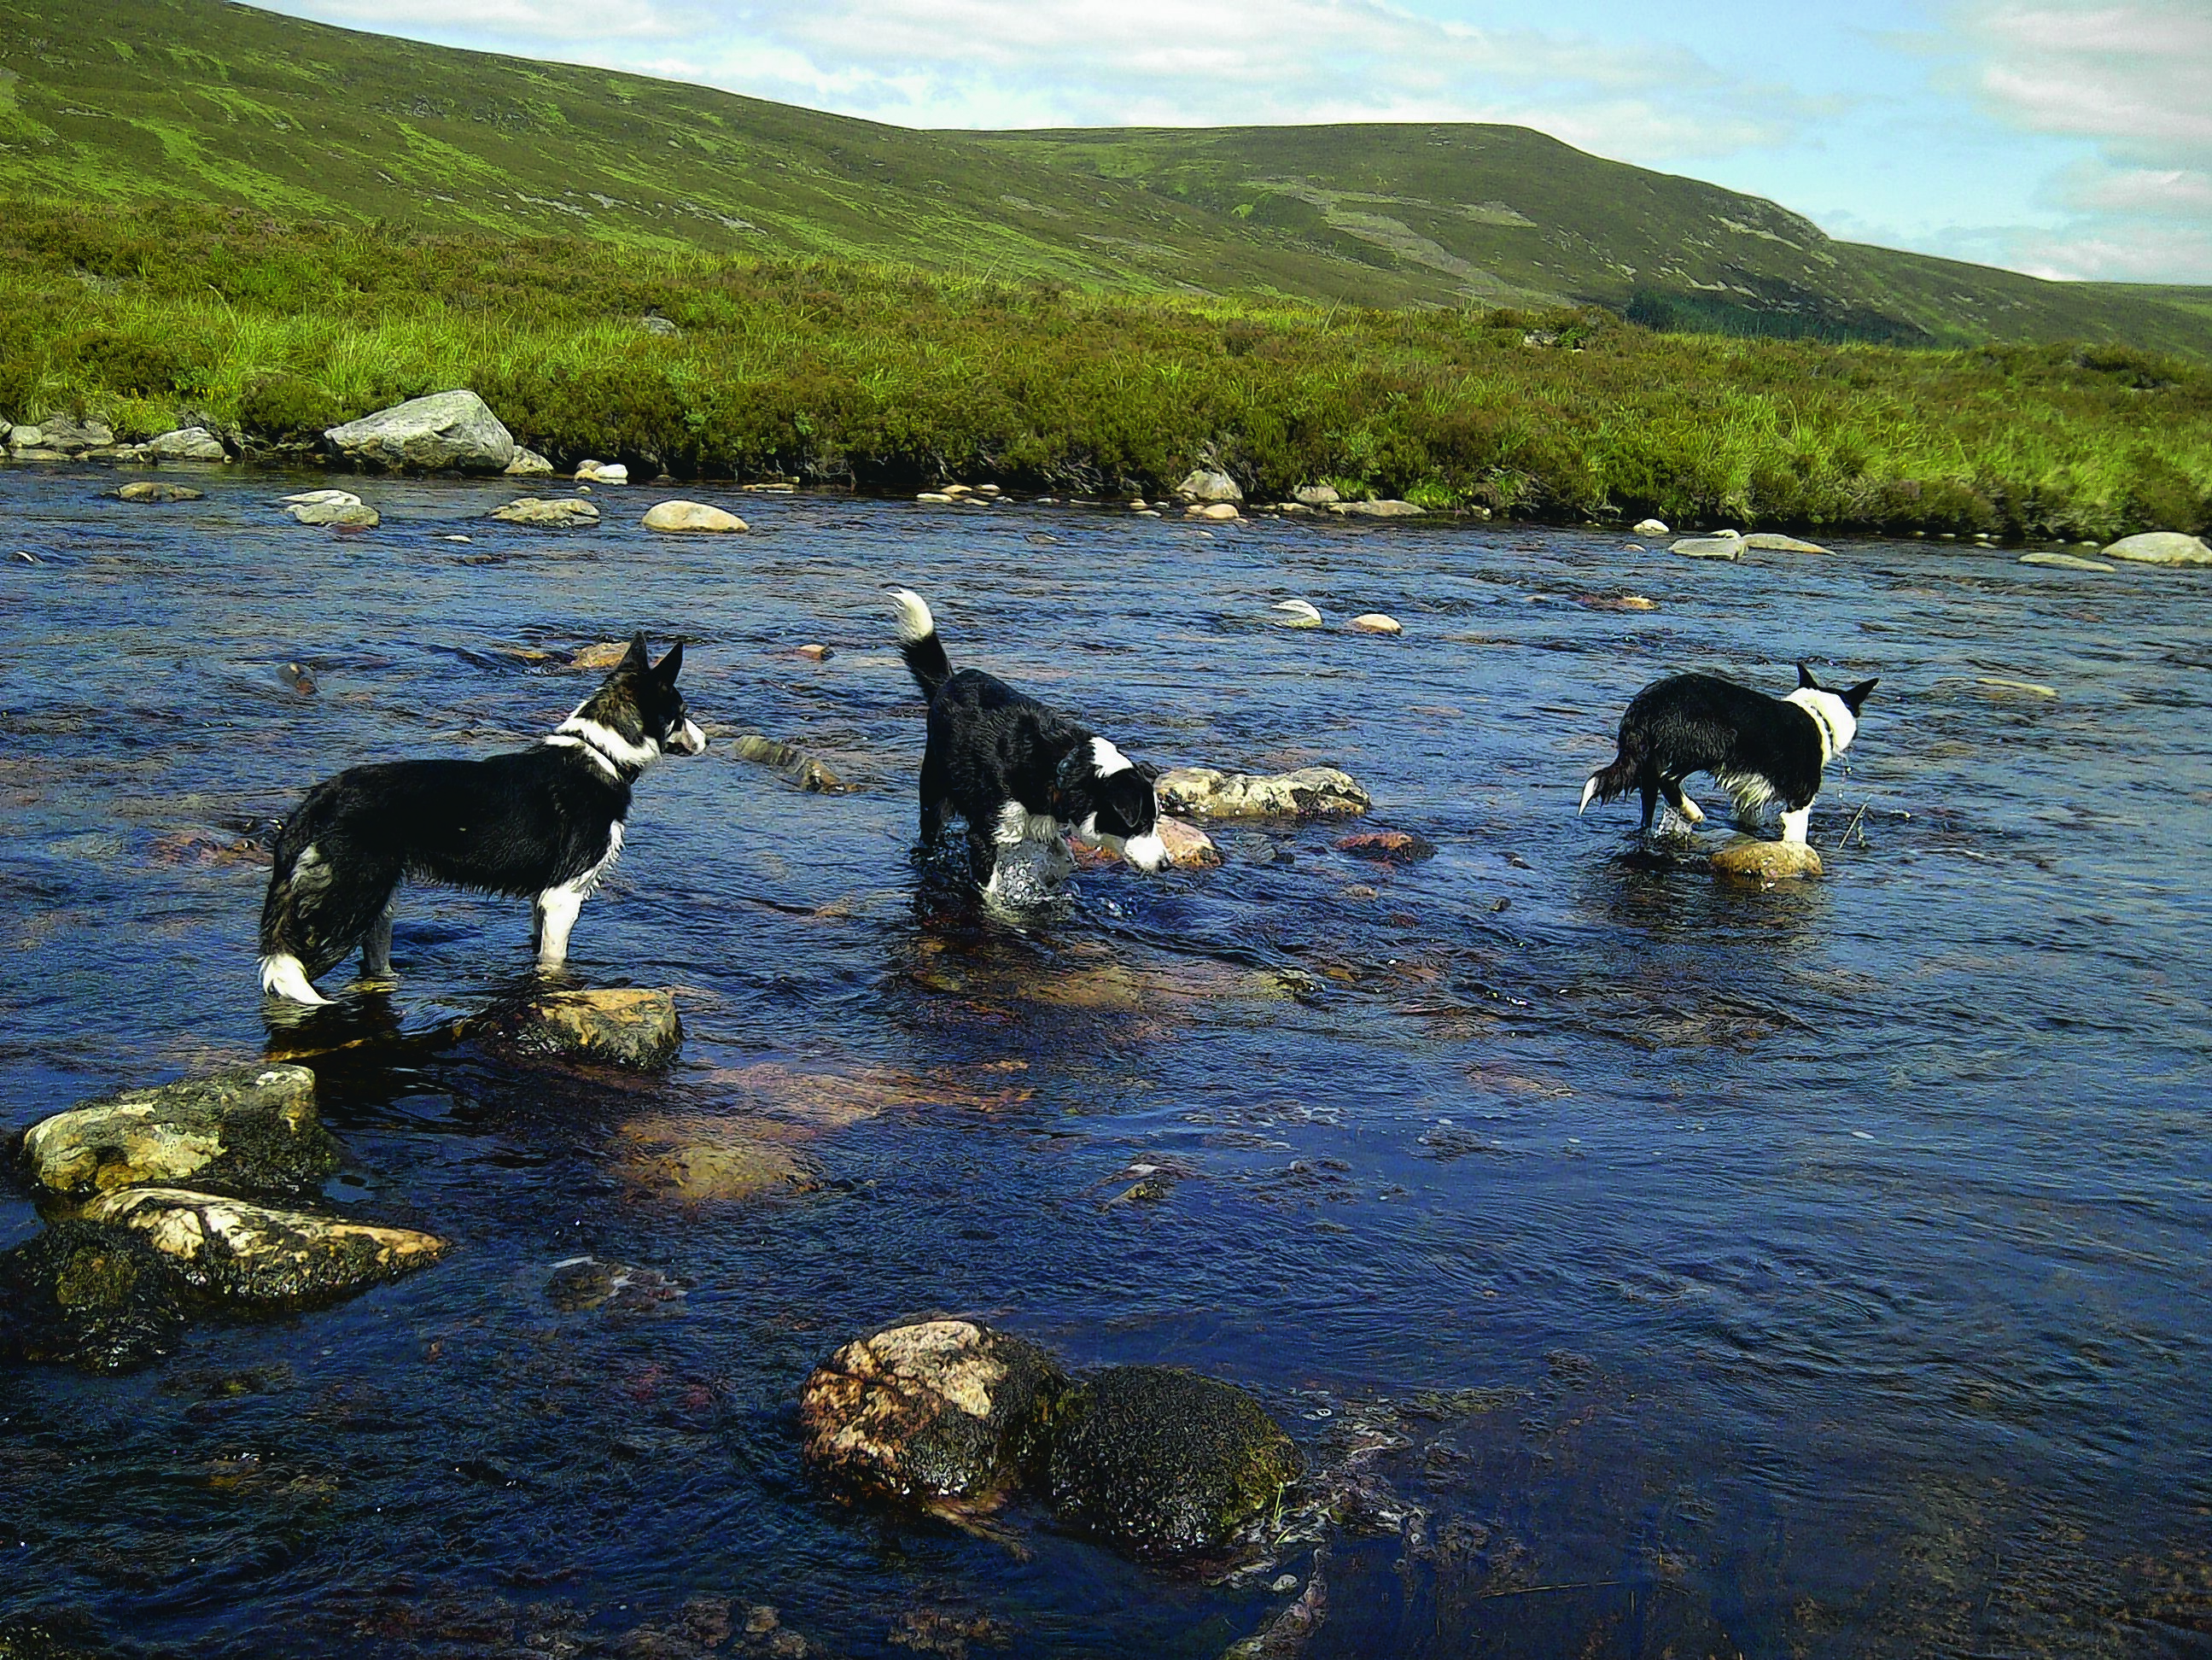 From L- R: Spark, Rocket and Jet paddling in the Dee at Braemar. They are owned by Catherine and Douglas Munro of Fortrose, Ross-shire. They are our winners this week.